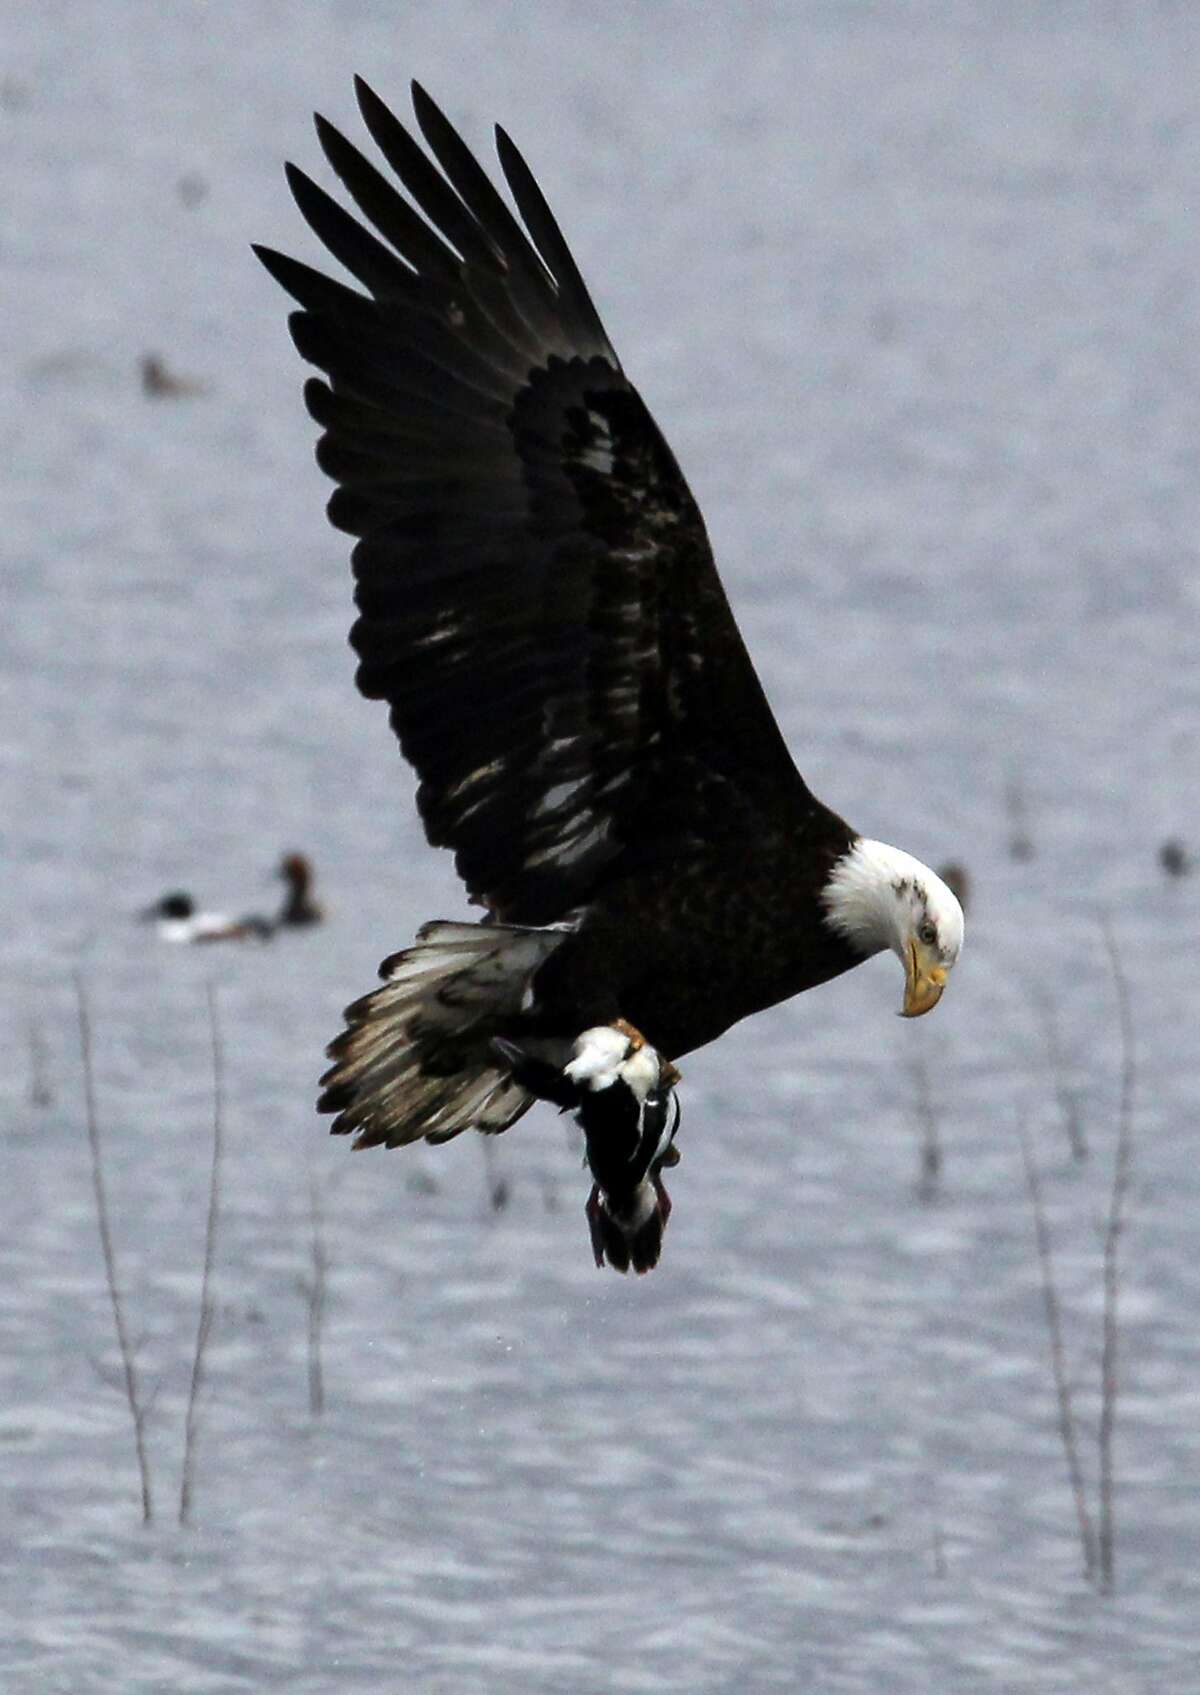 A Bald Eagle picks up a small duck Wednesday, April 18, 2012 in Tulelake, Calif. An estimated 10,000 to 20,000 migrating birds have died so far this year because of reduced water flow to the Lower Klamath National Wildlife Refuge in California and Oregon.